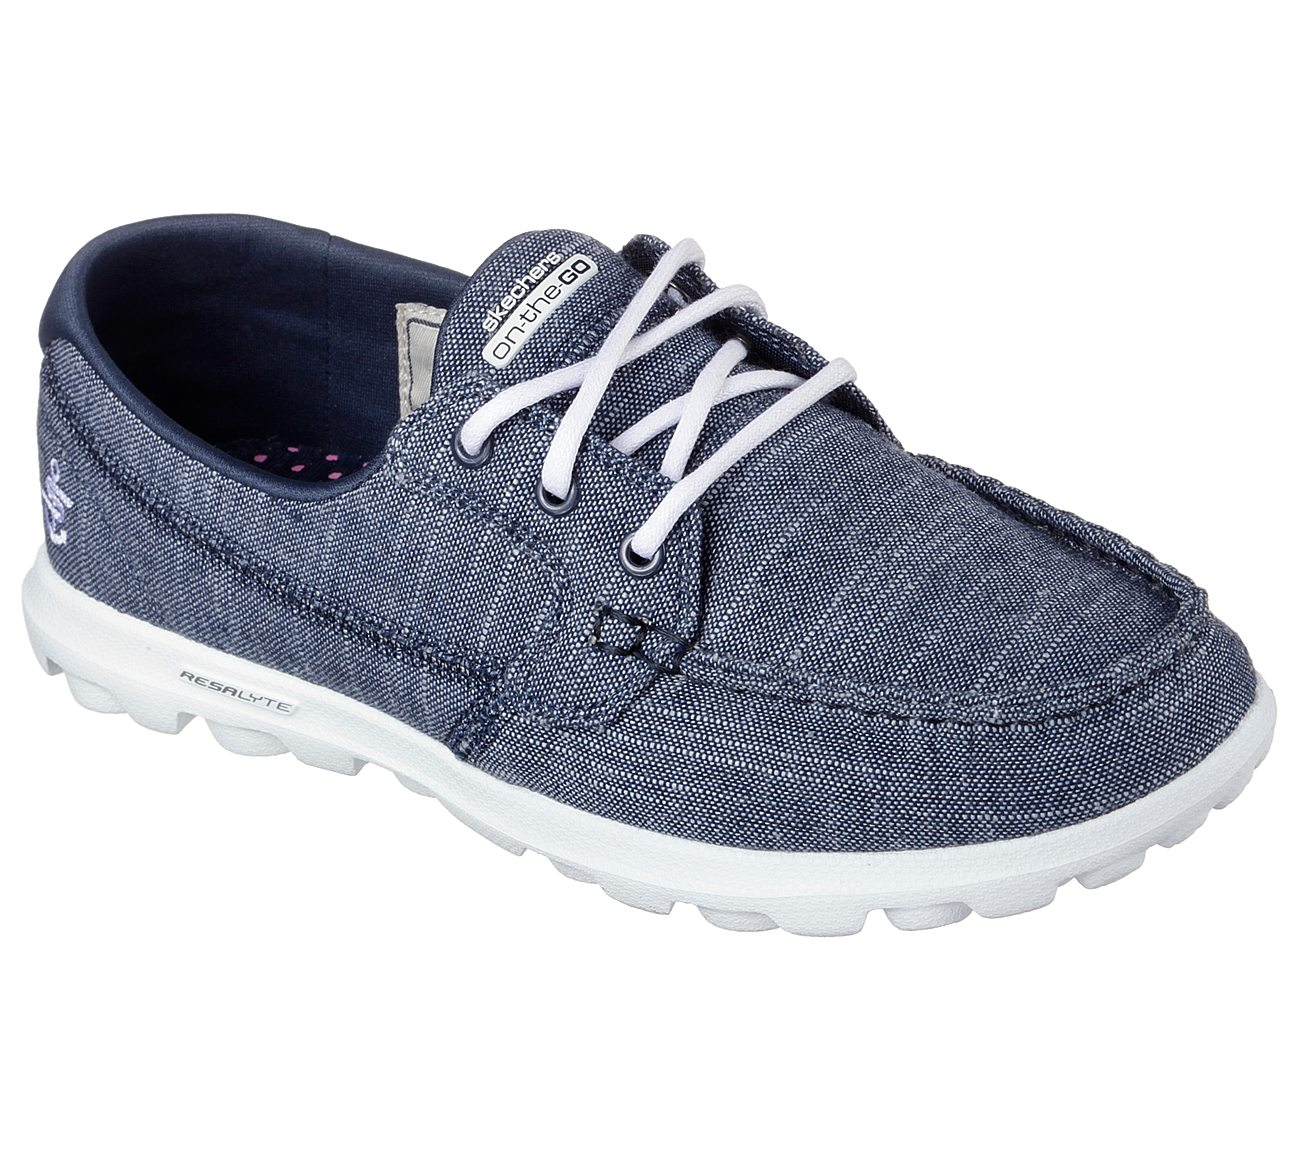 skechers on the go women's boat shoes